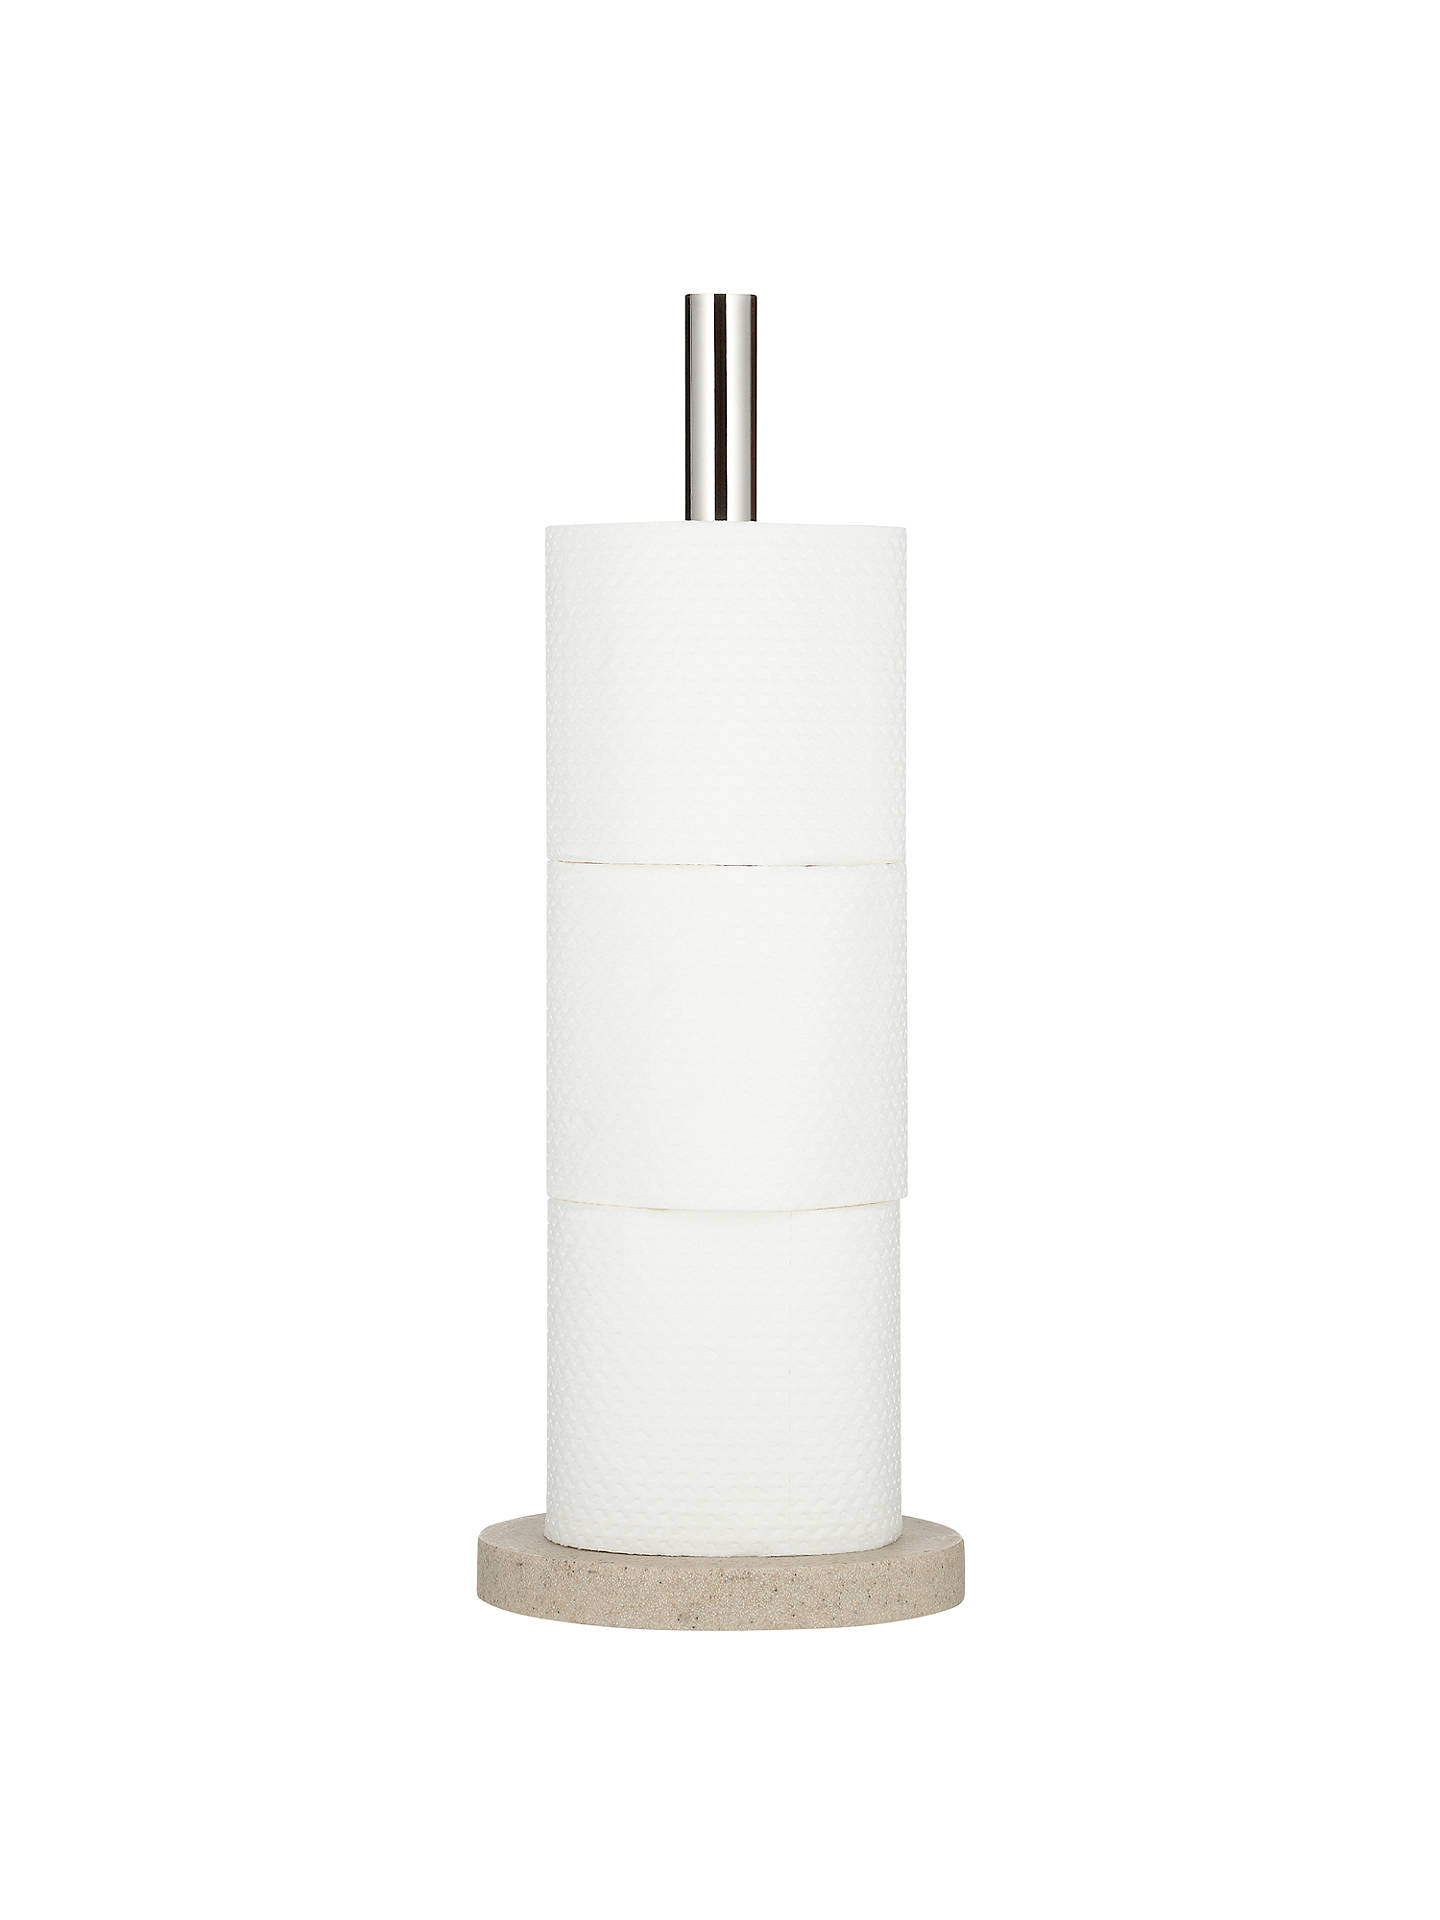 BuyJohn Lewis & Partners Dune Large Toilet Roll Tidy, Sandstone Online at johnlewis.com